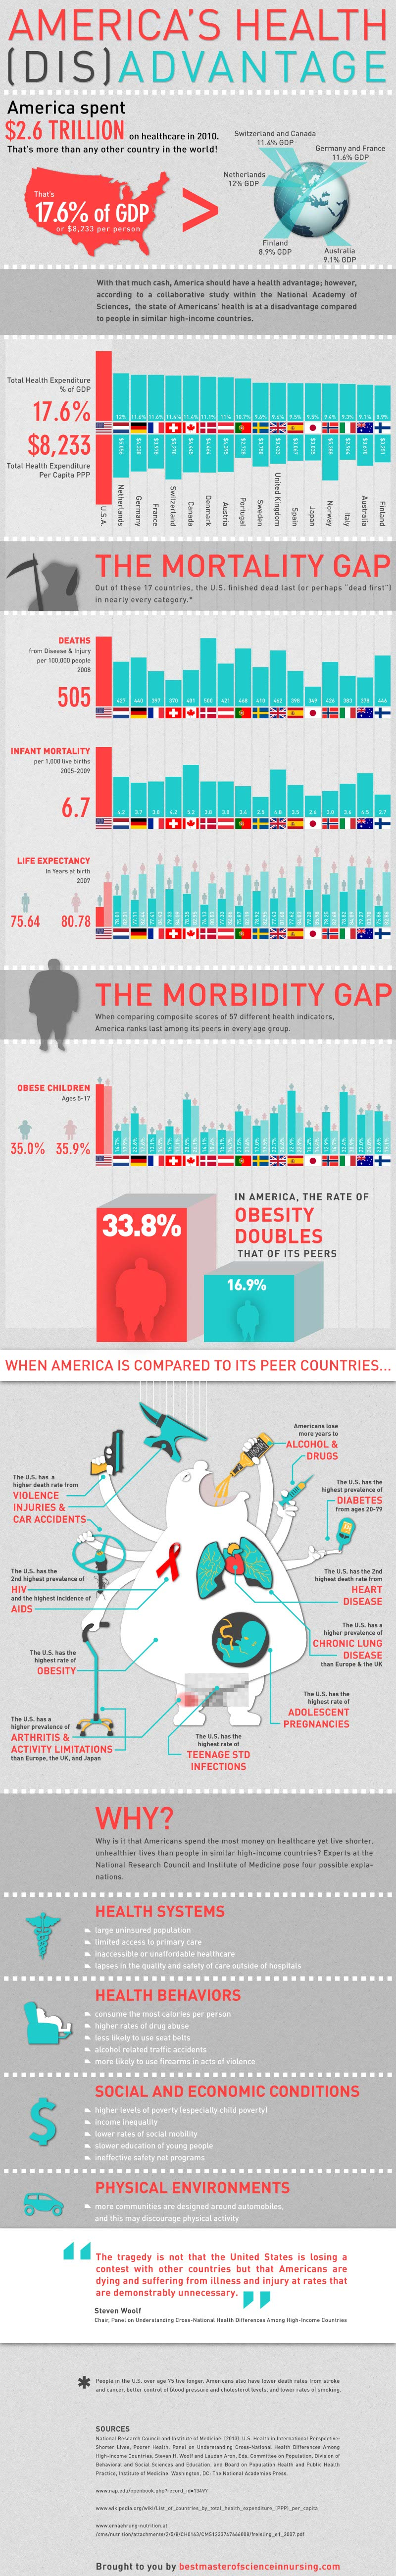 American Health Paradox-Infographic